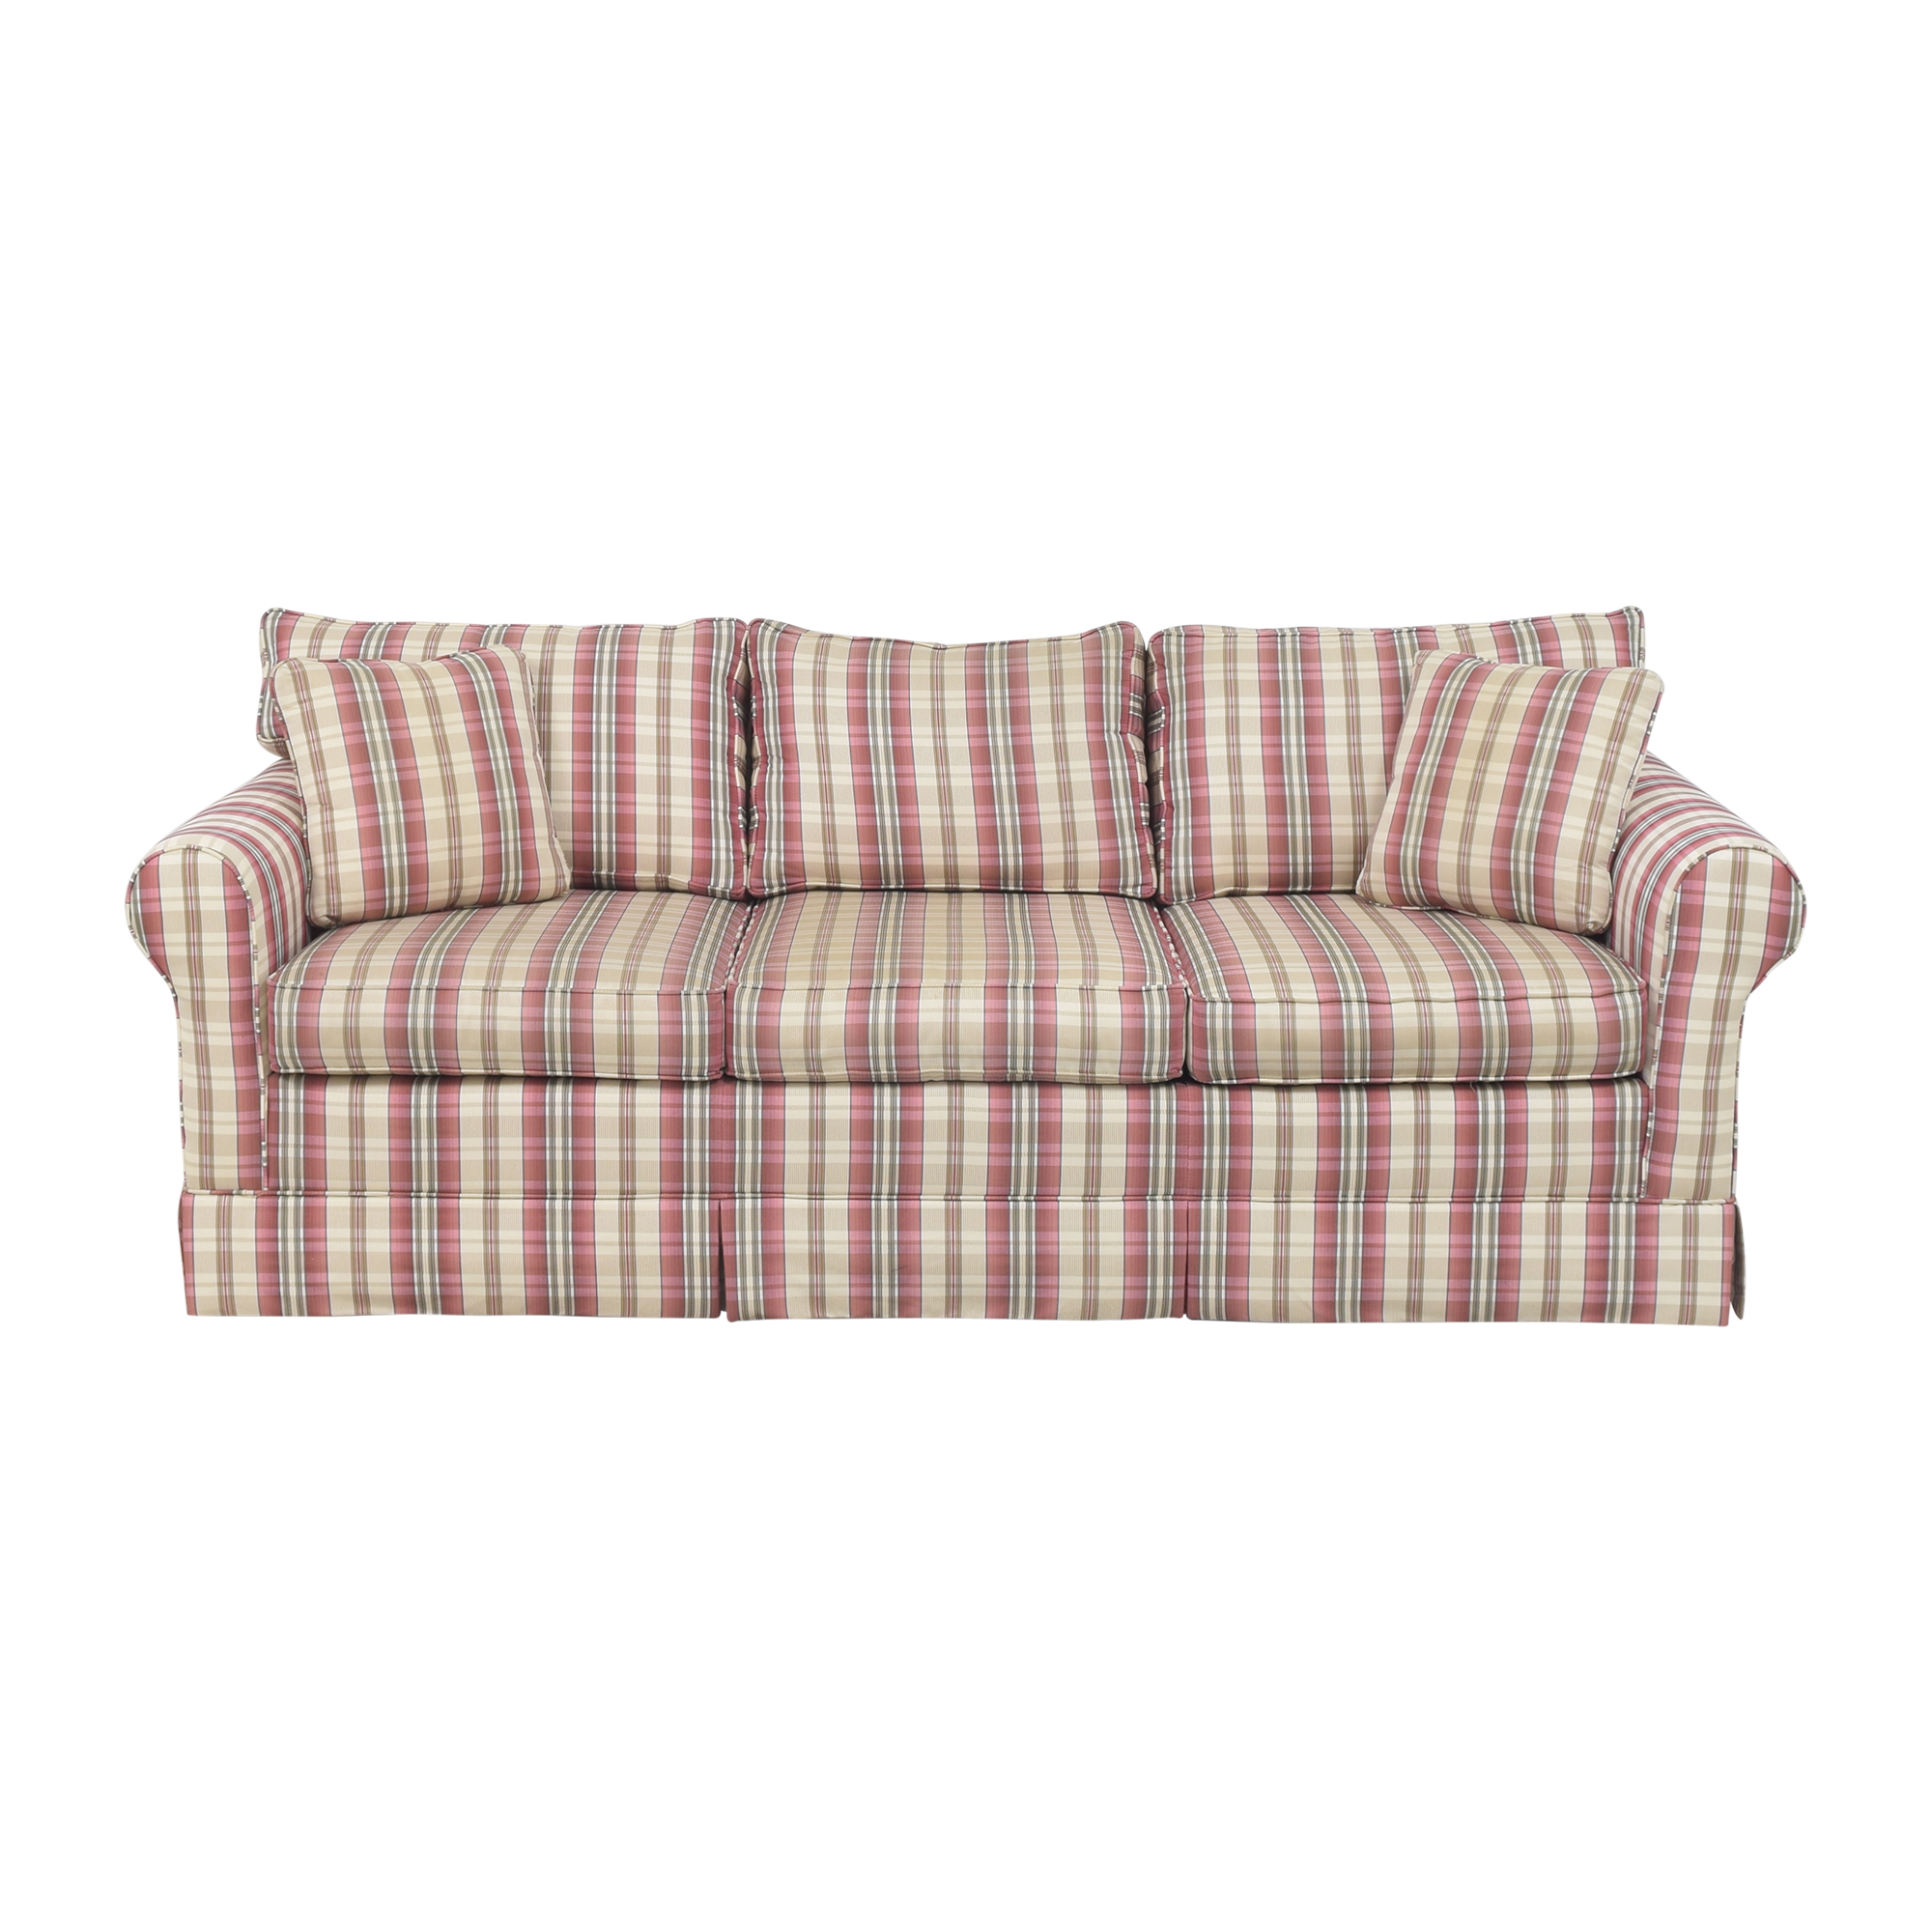 shop Choice Seating Gallery Skirted Three Cushion Sofa Choice Seating Gallery